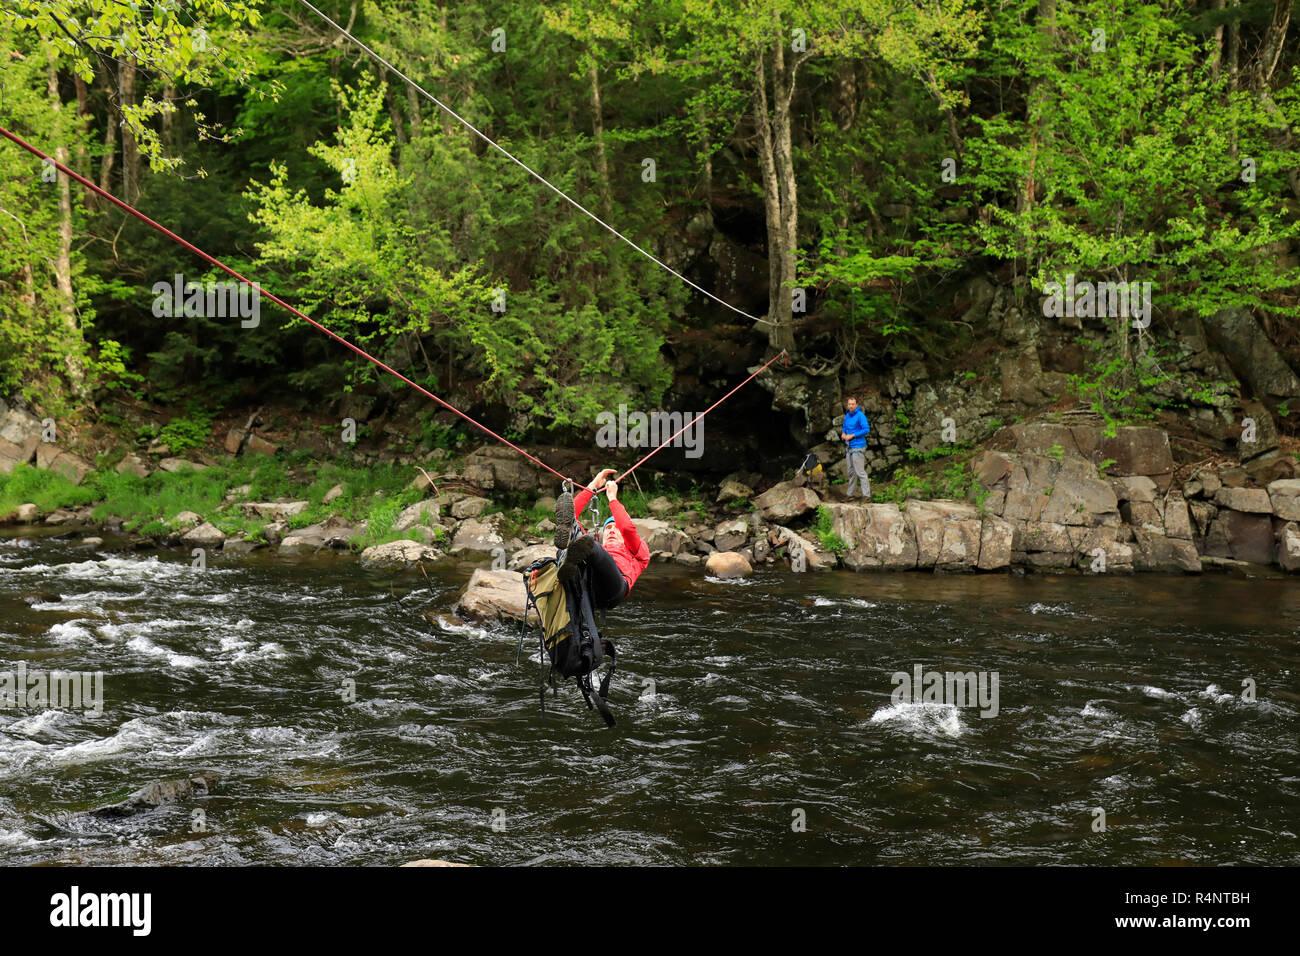 Climber traversing across the Au Sable River to access the climbing a route on Moss Cliff above Wilmington Notch, Adirondack Mountains, New York State, USA Stock Photo